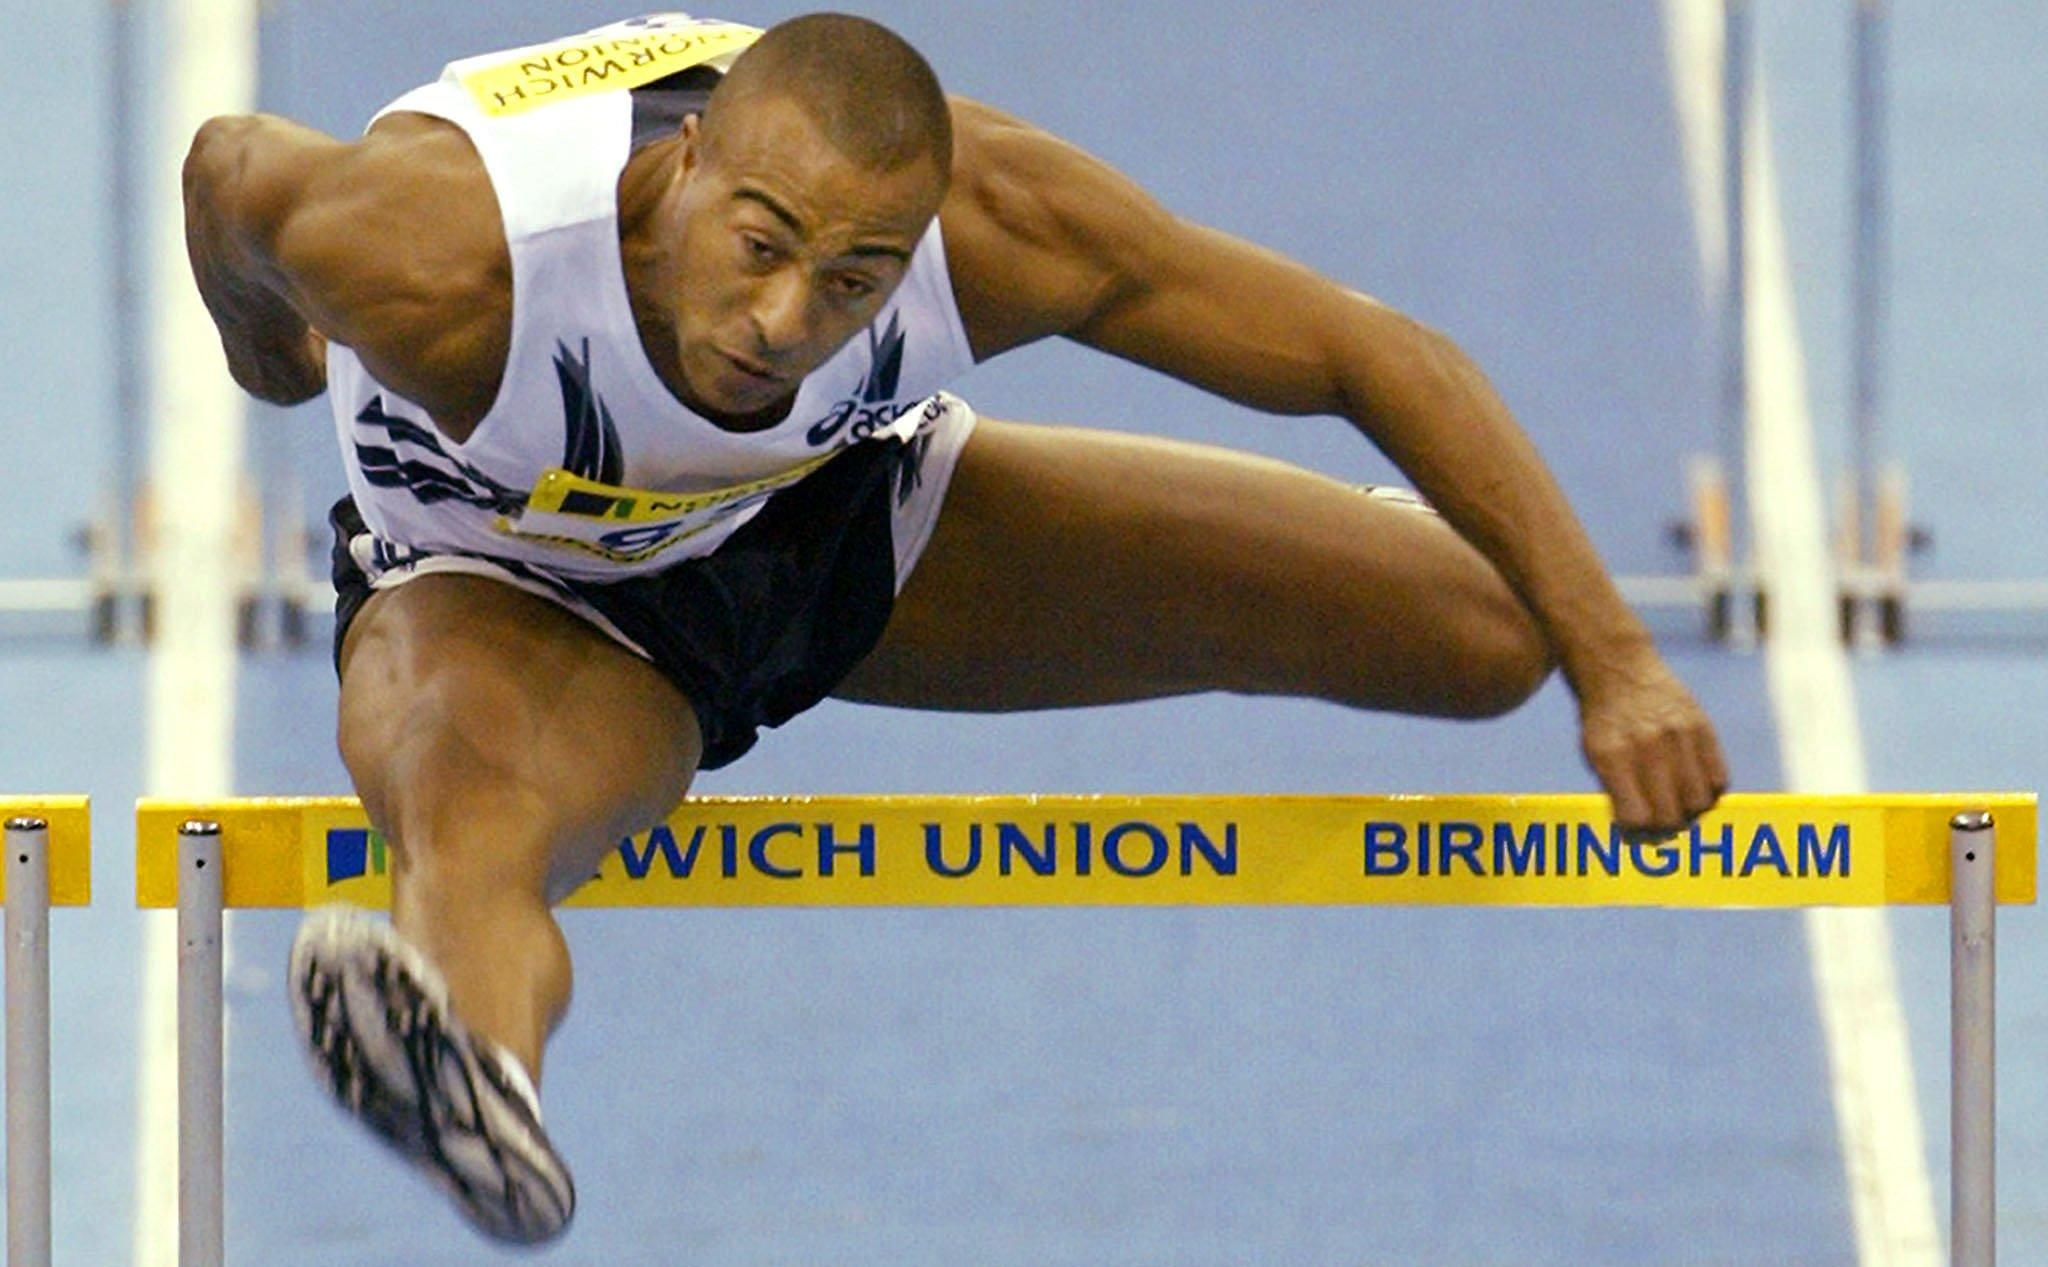 Colin Jackson won a silver medal at the 1988 Summer Olympics and took gold twice in the 110m hurdles at the World Championships.